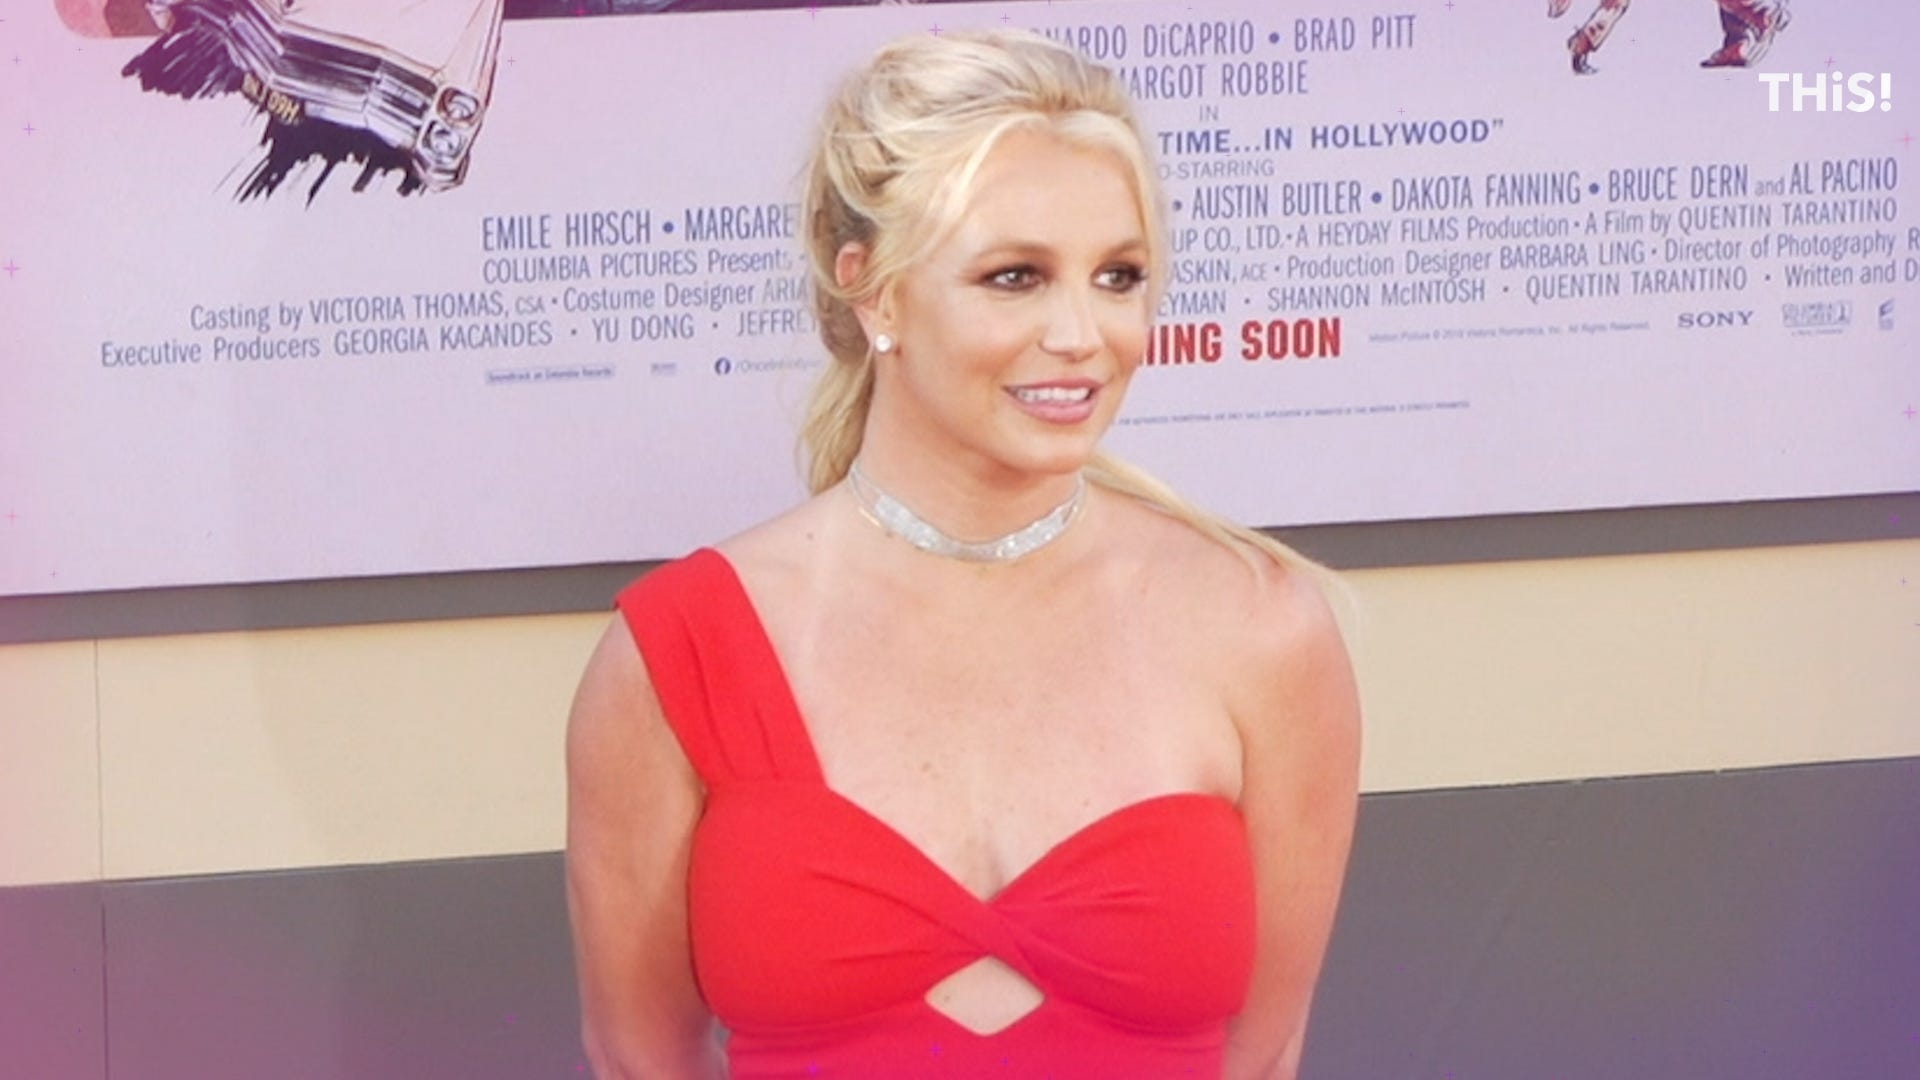 What Britney Spears, her boyfriend, celebs are saying following 'Framing Britney' doc